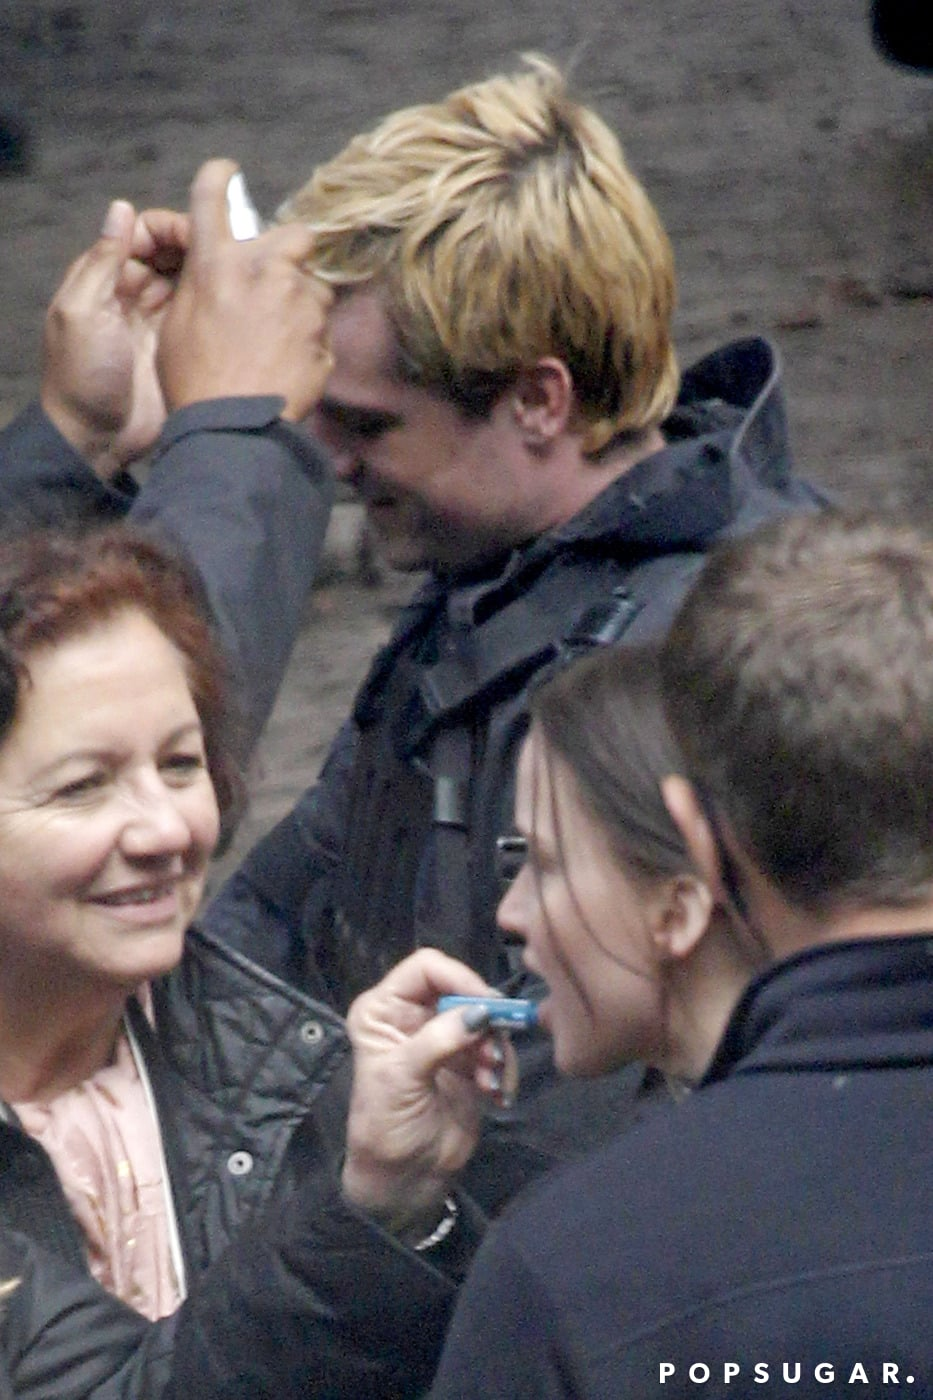 A stylist adjusted Hutcherson's hair during a break.